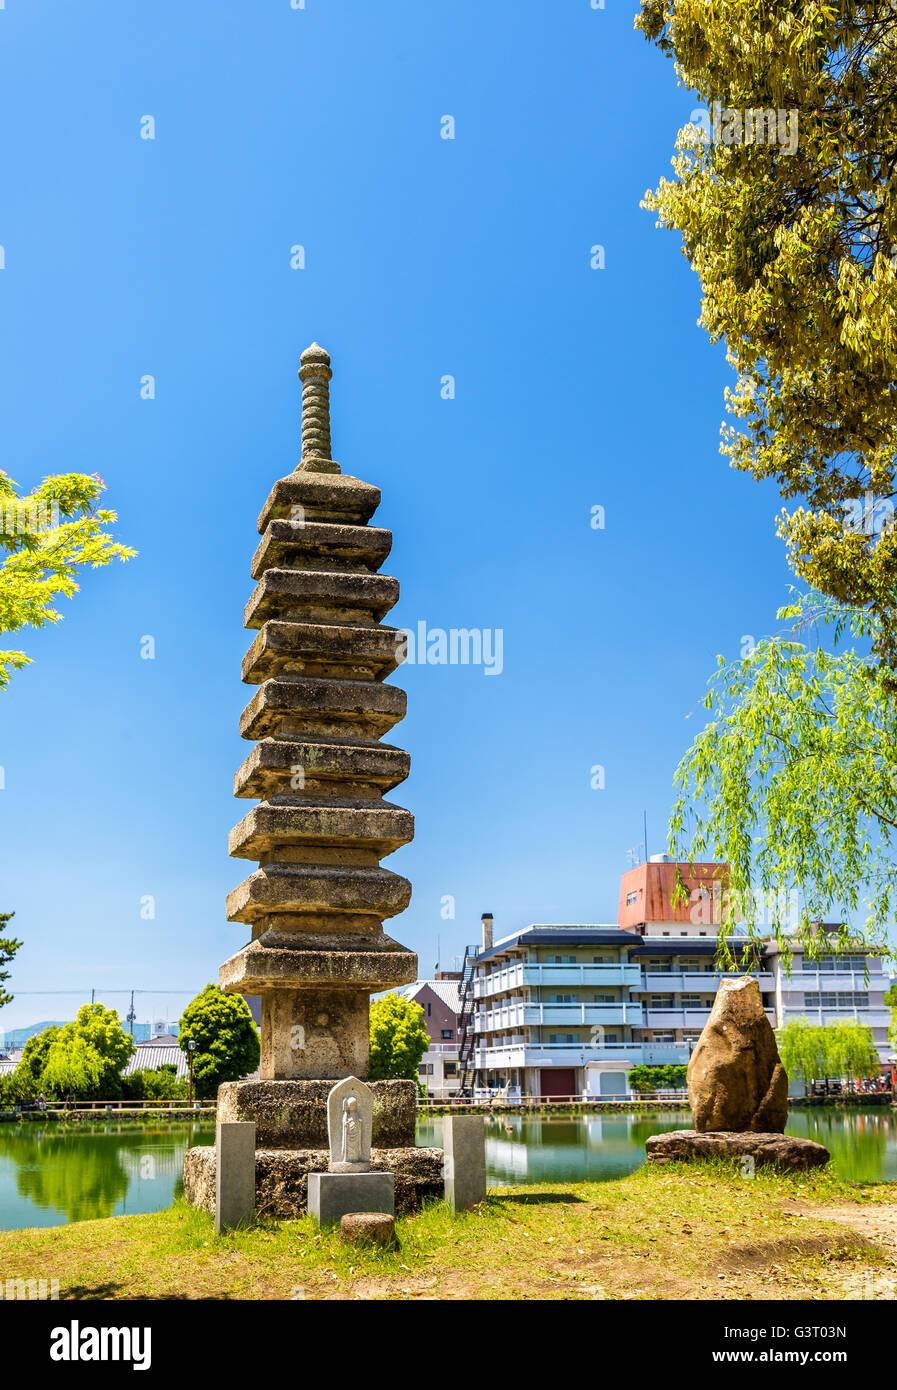 Old Stone Pagoda in Nara - Stock Image